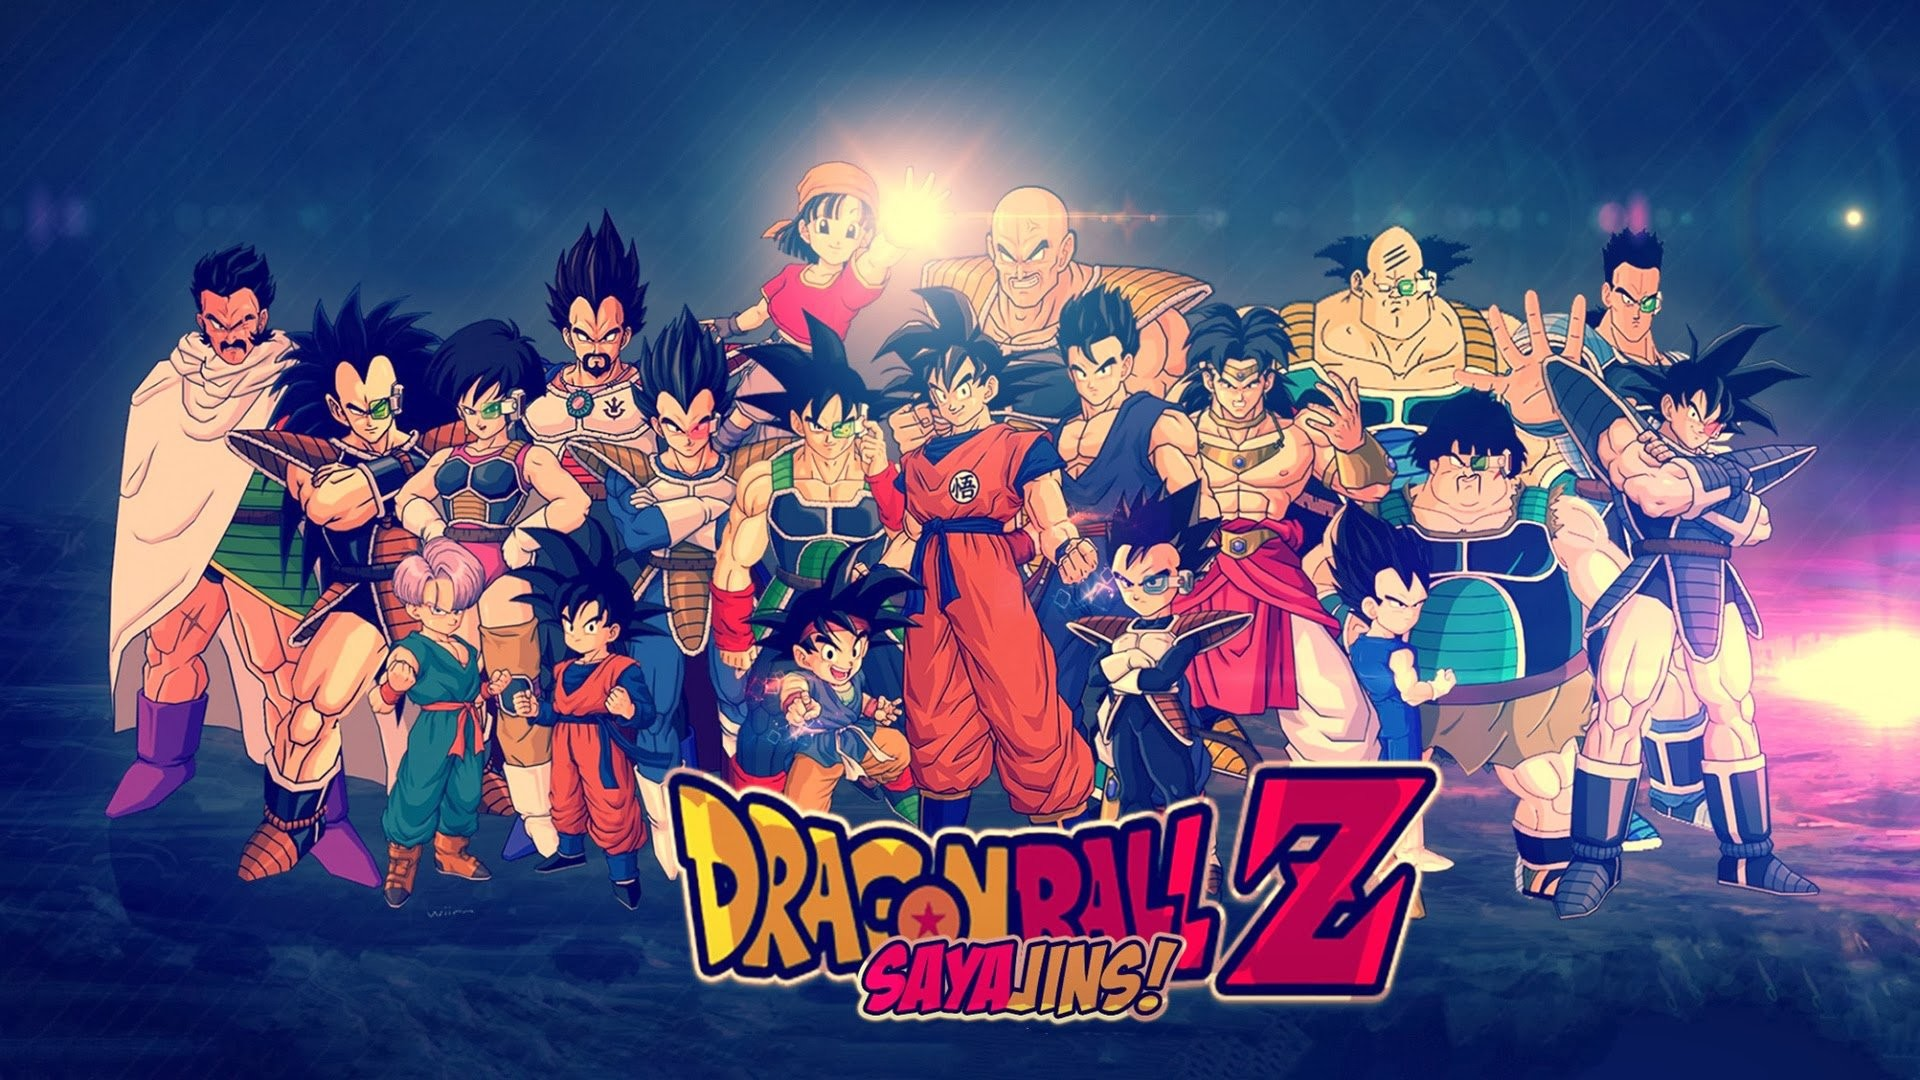 Dragon Ball Z Hd Wallpapers 69 Images